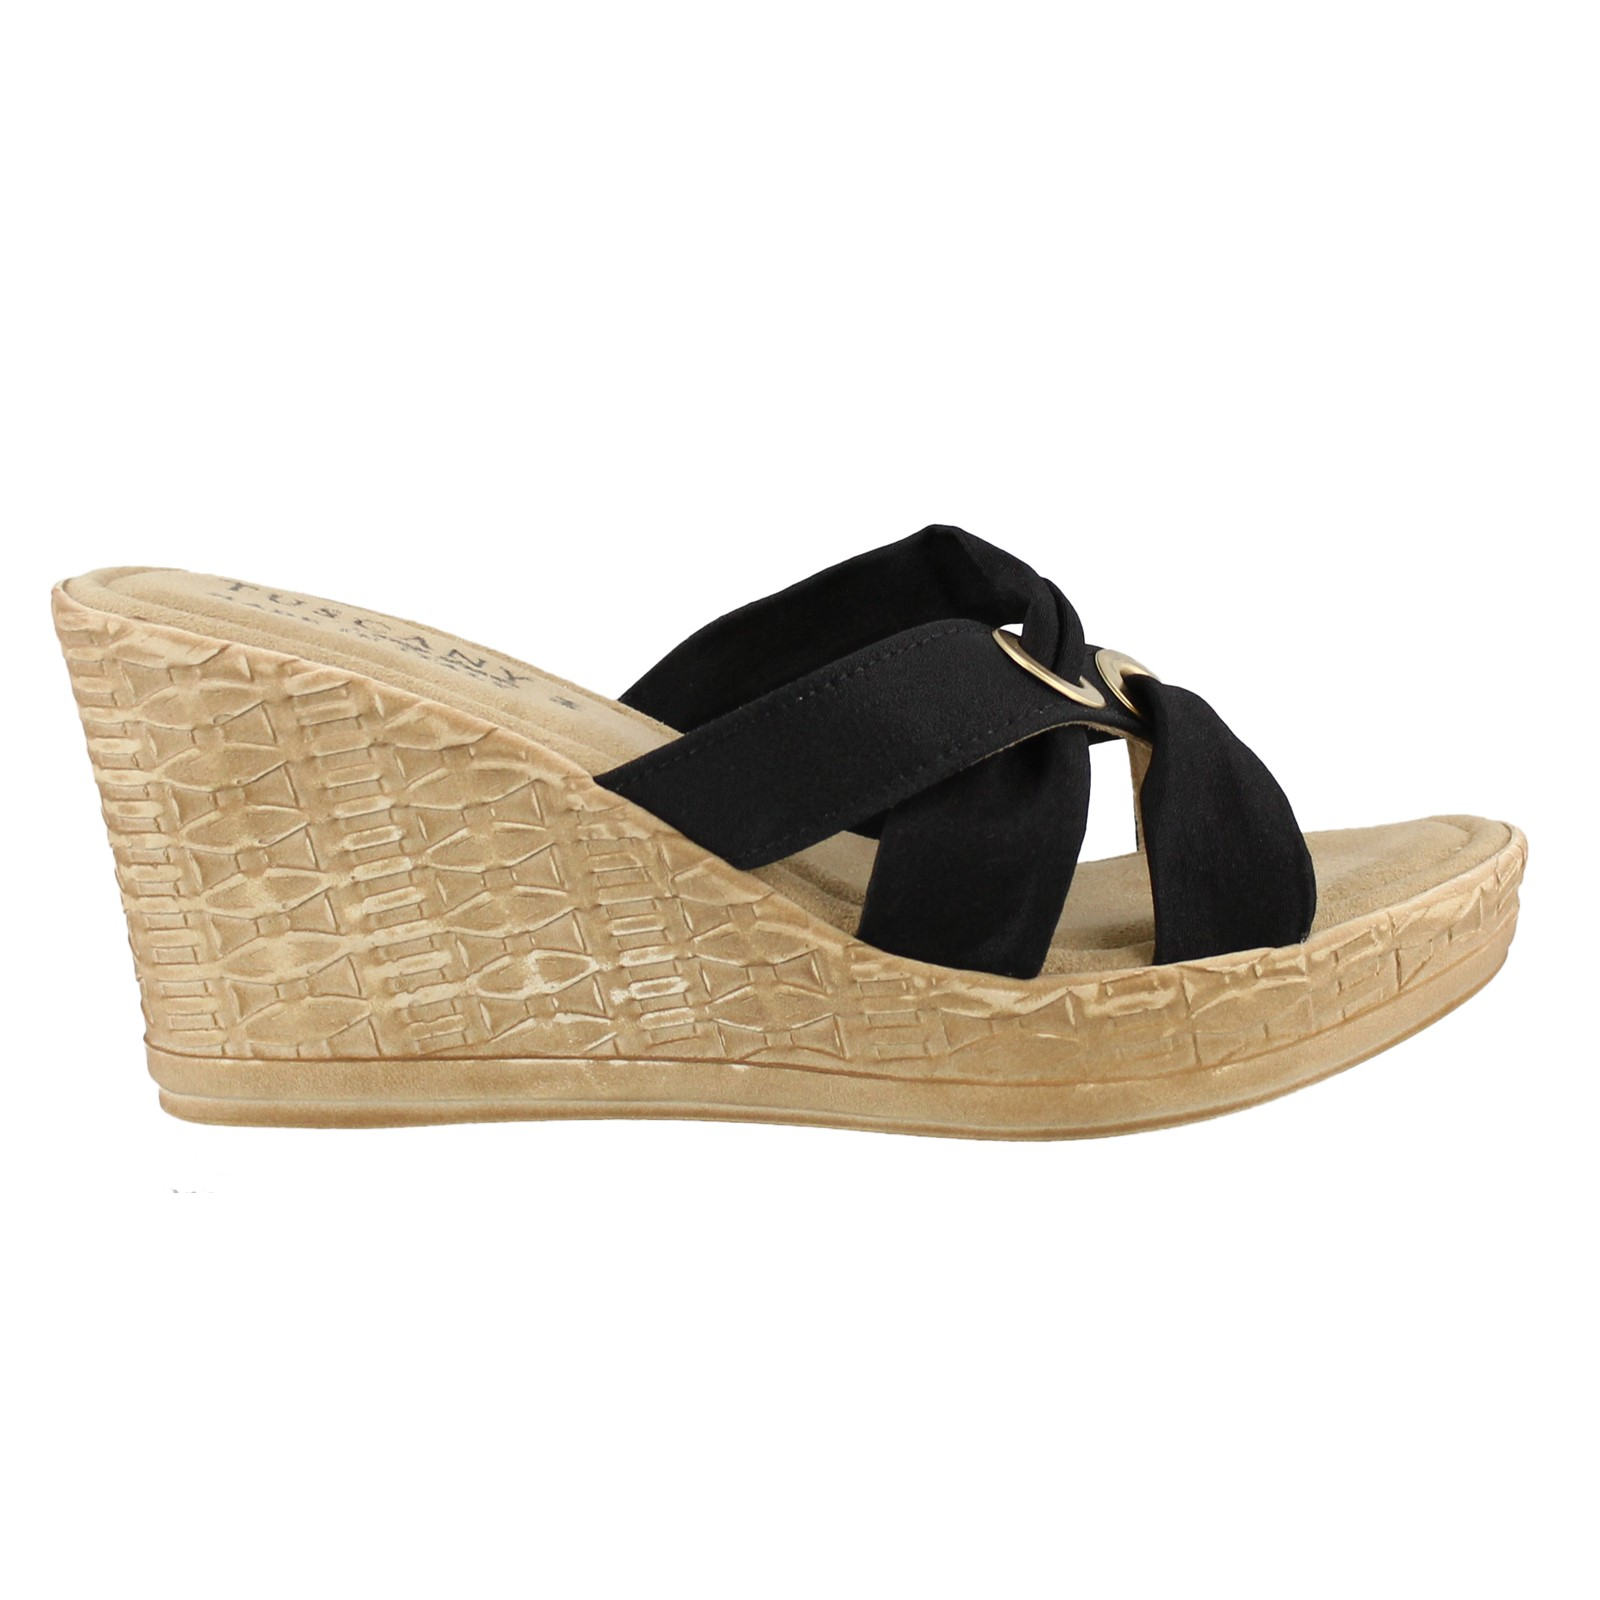 Women's Easy Street, Solaro High Heel Wedge Sandal